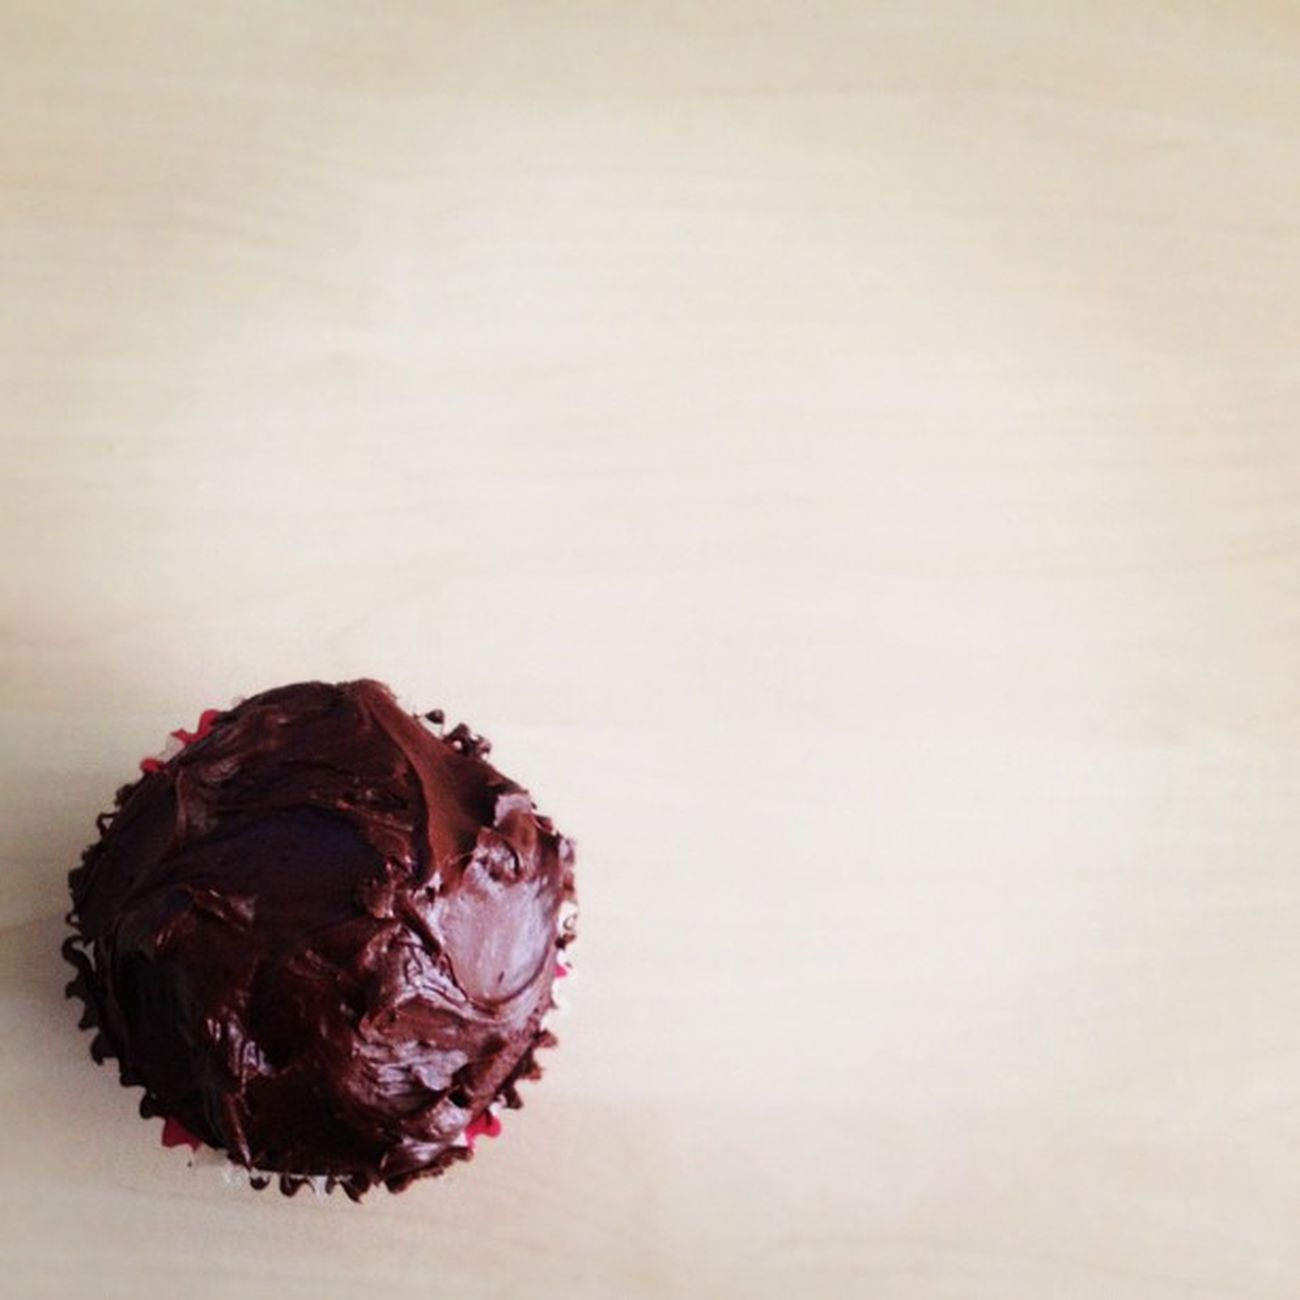 Tripple-Choc-Muffin! \o/